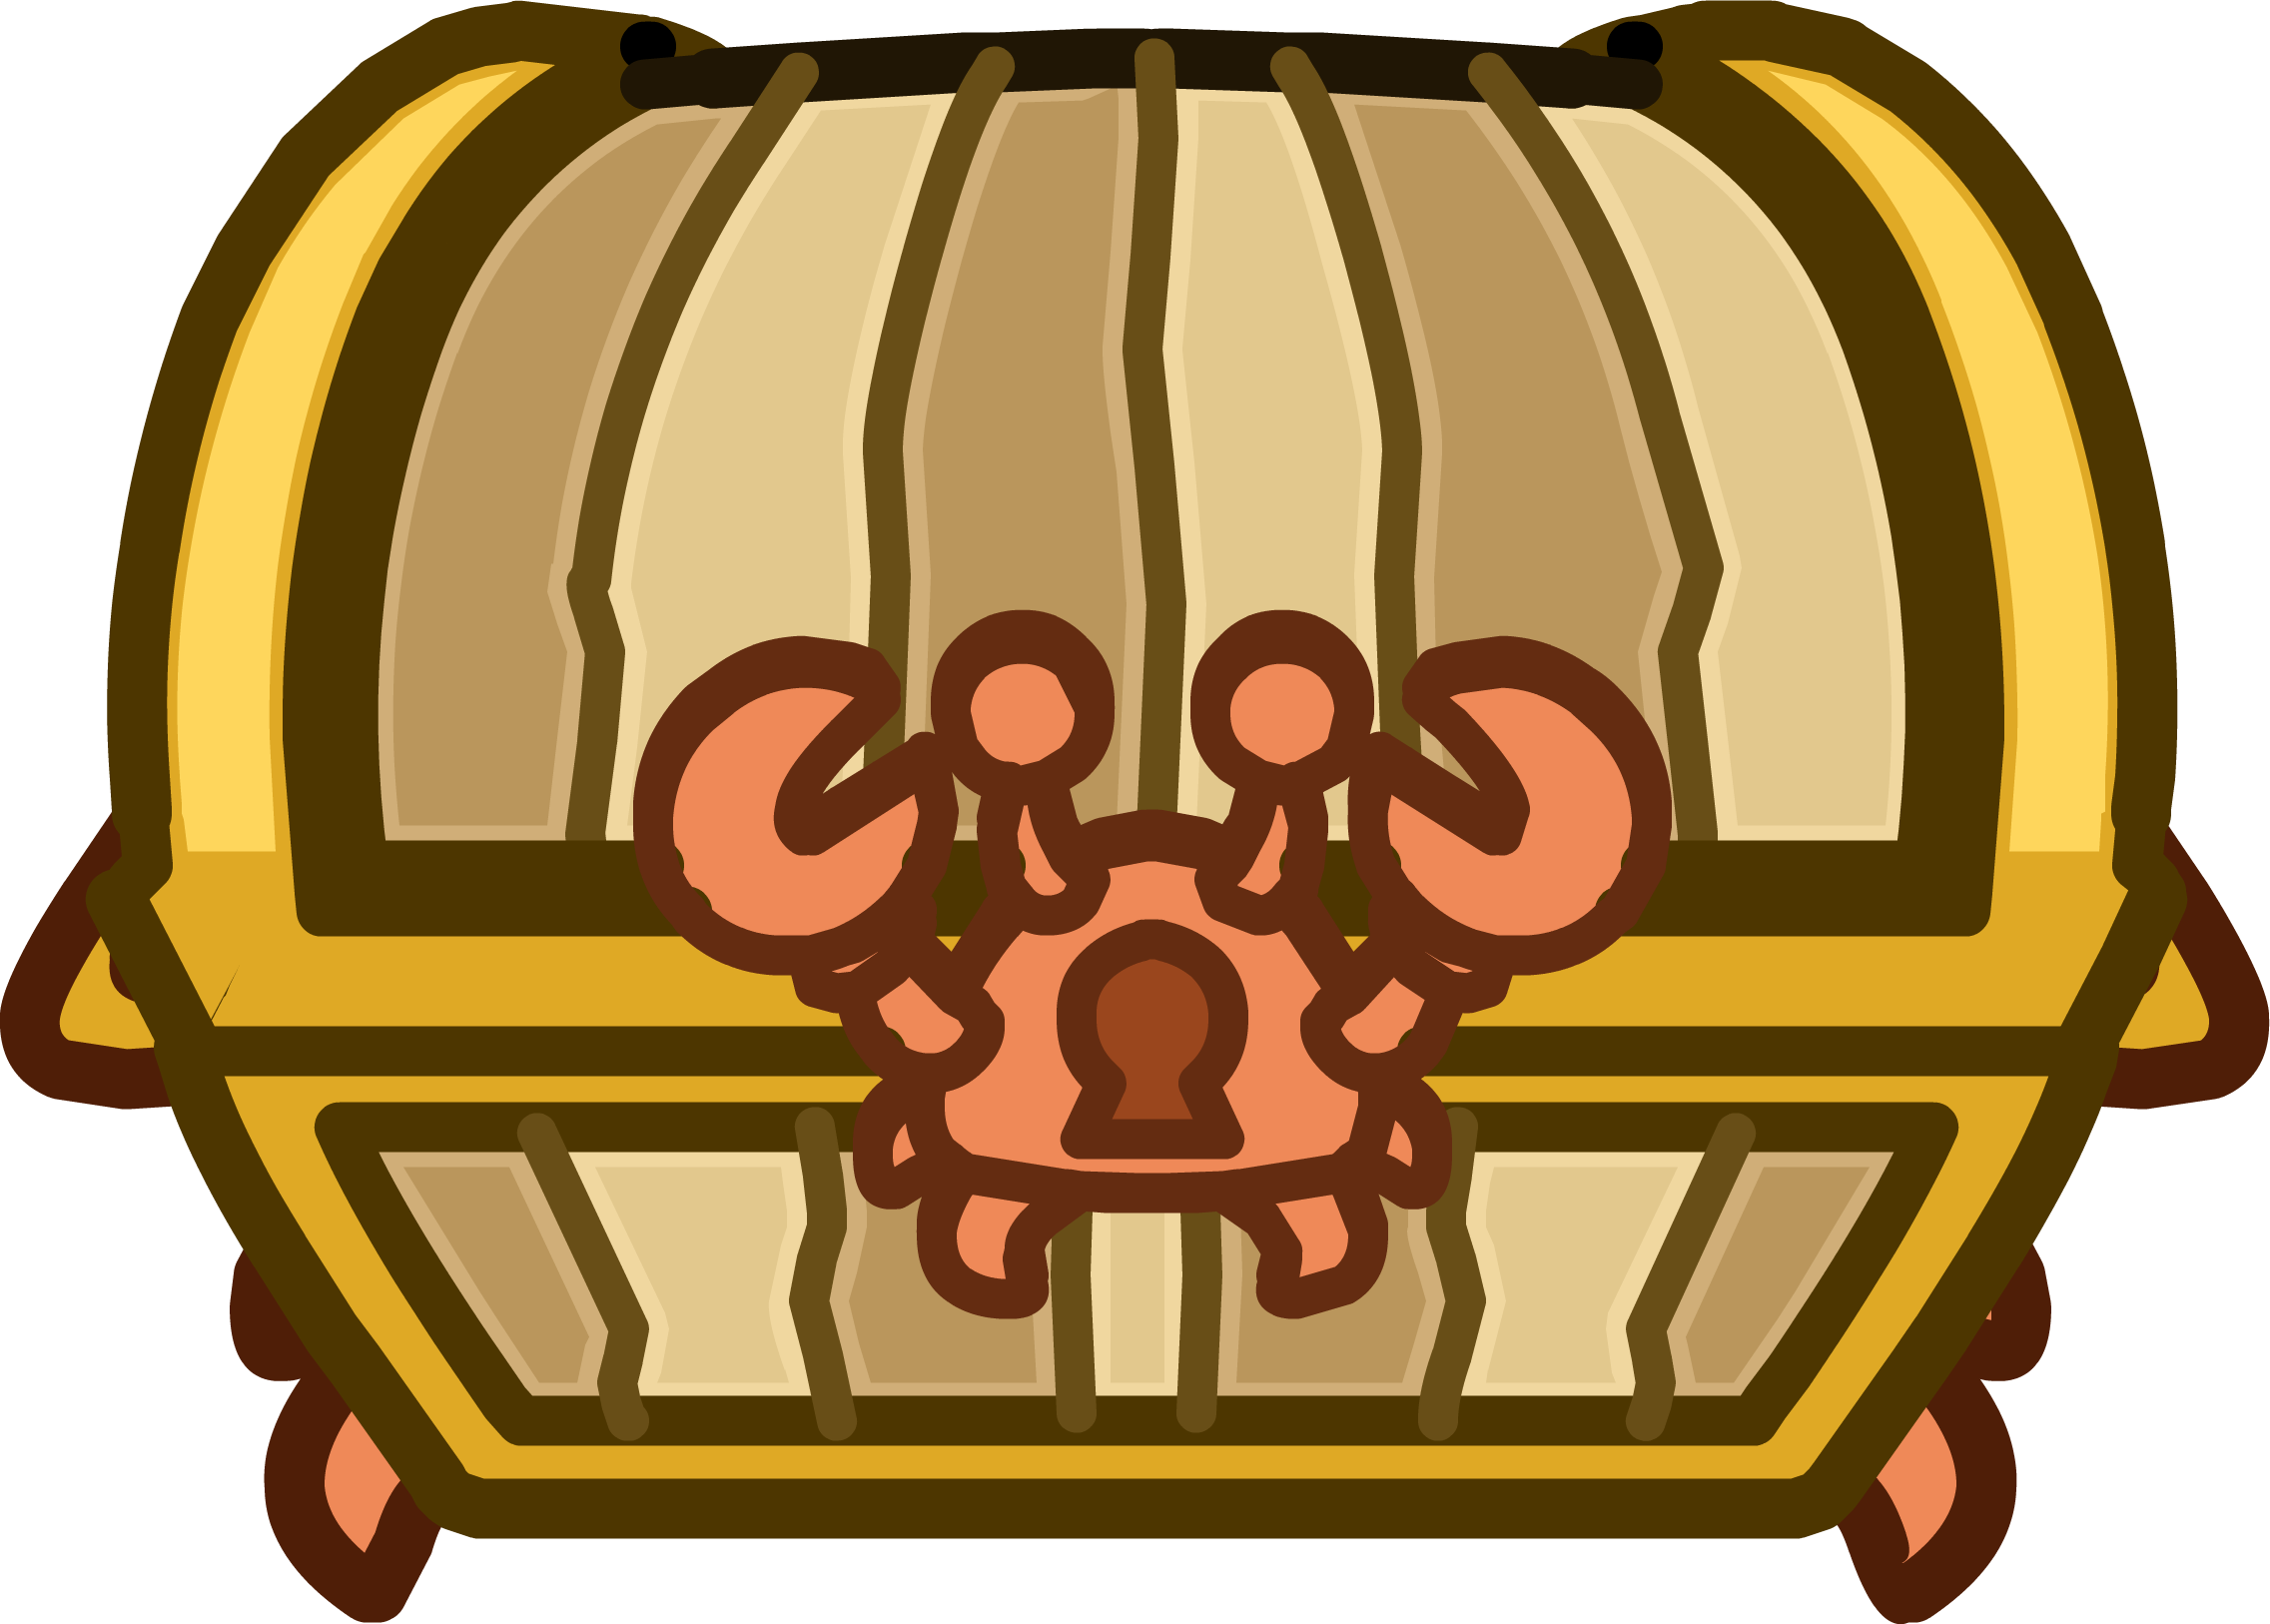 Crab chest club penguin. Treasure clipart treasure room